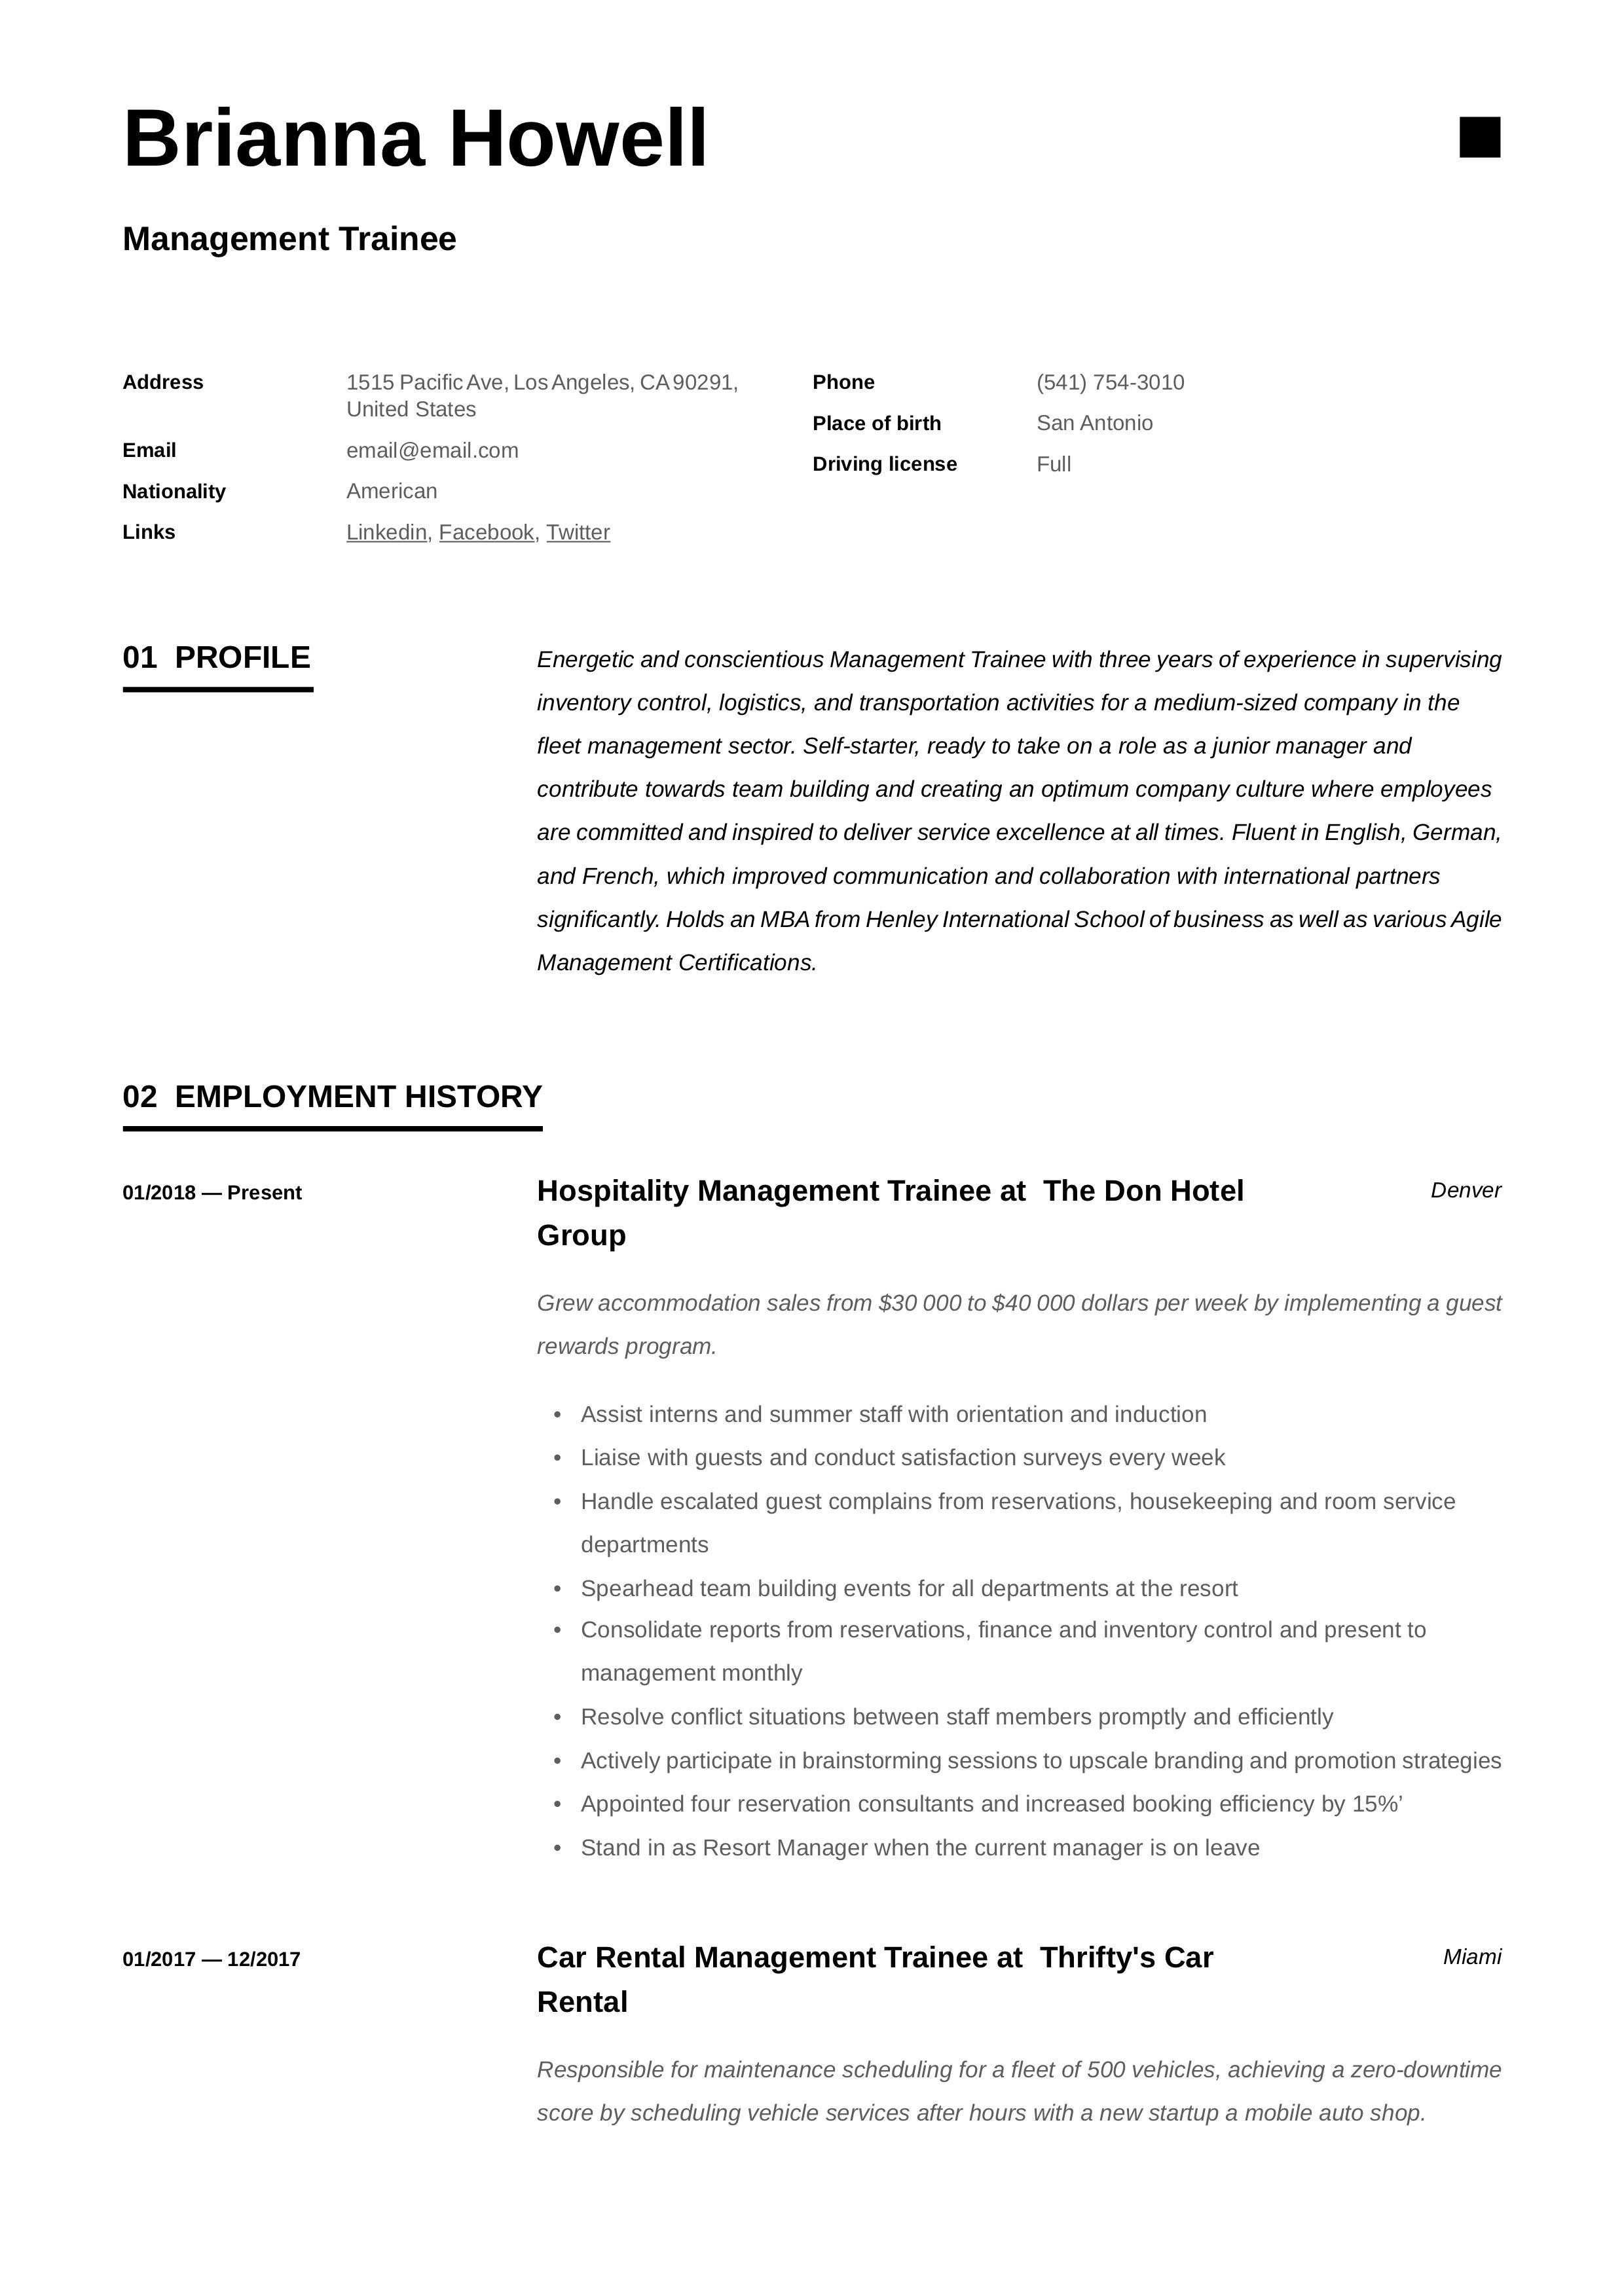 Professional Management Trainee Resume, template, design